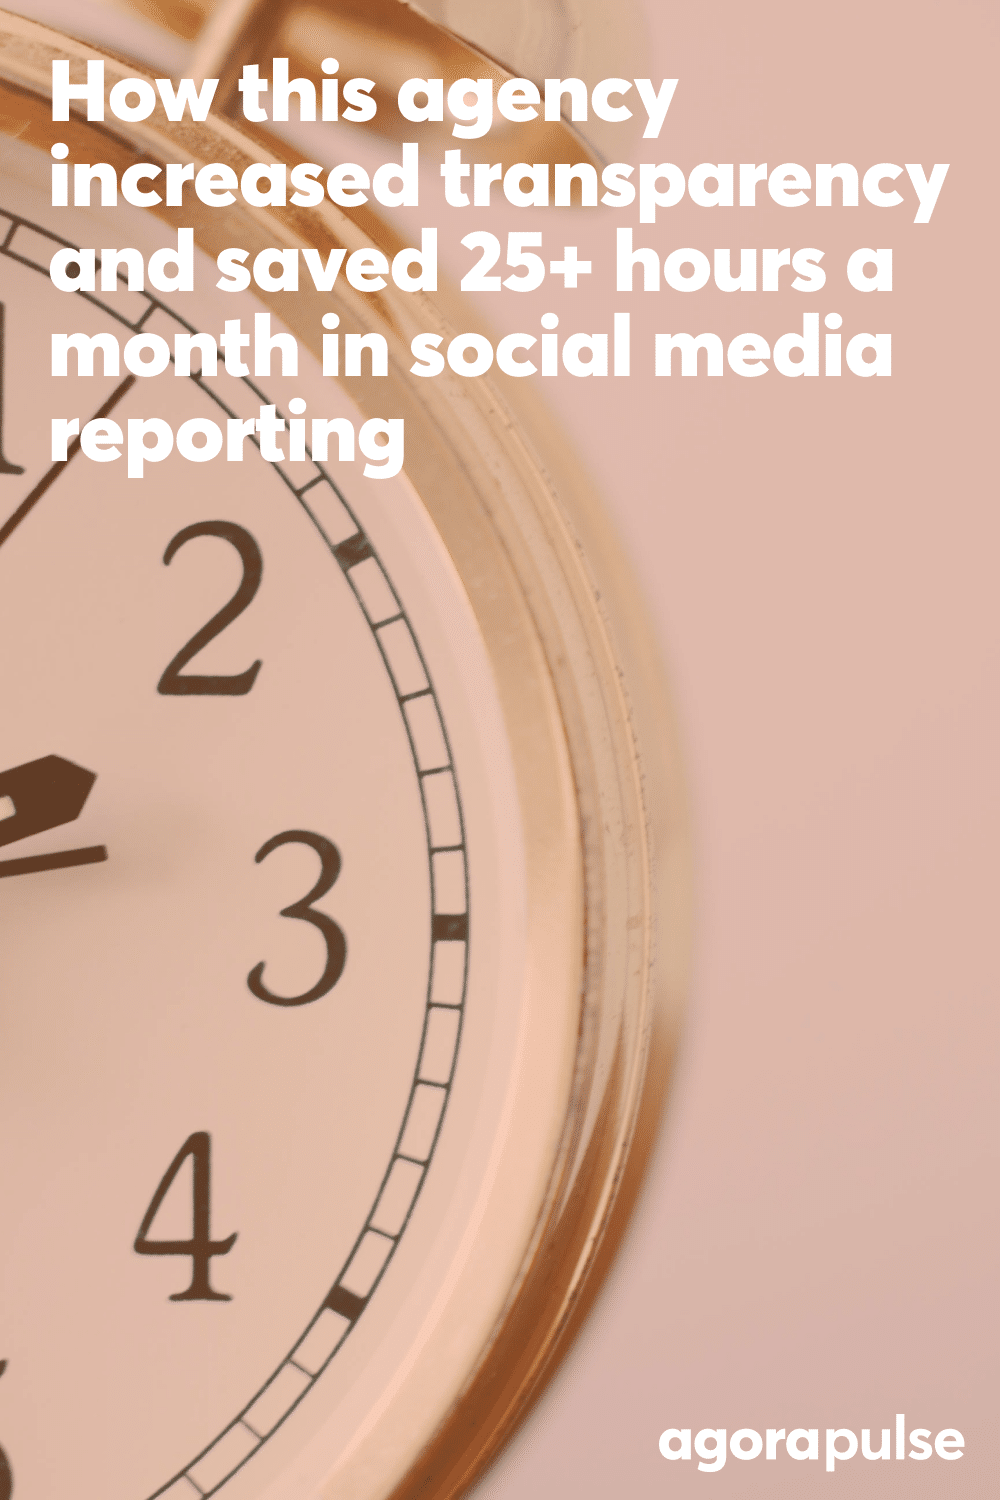 This Agency Saved 25+ Hours per Month in Social Media Reporting by Using Agorapulse